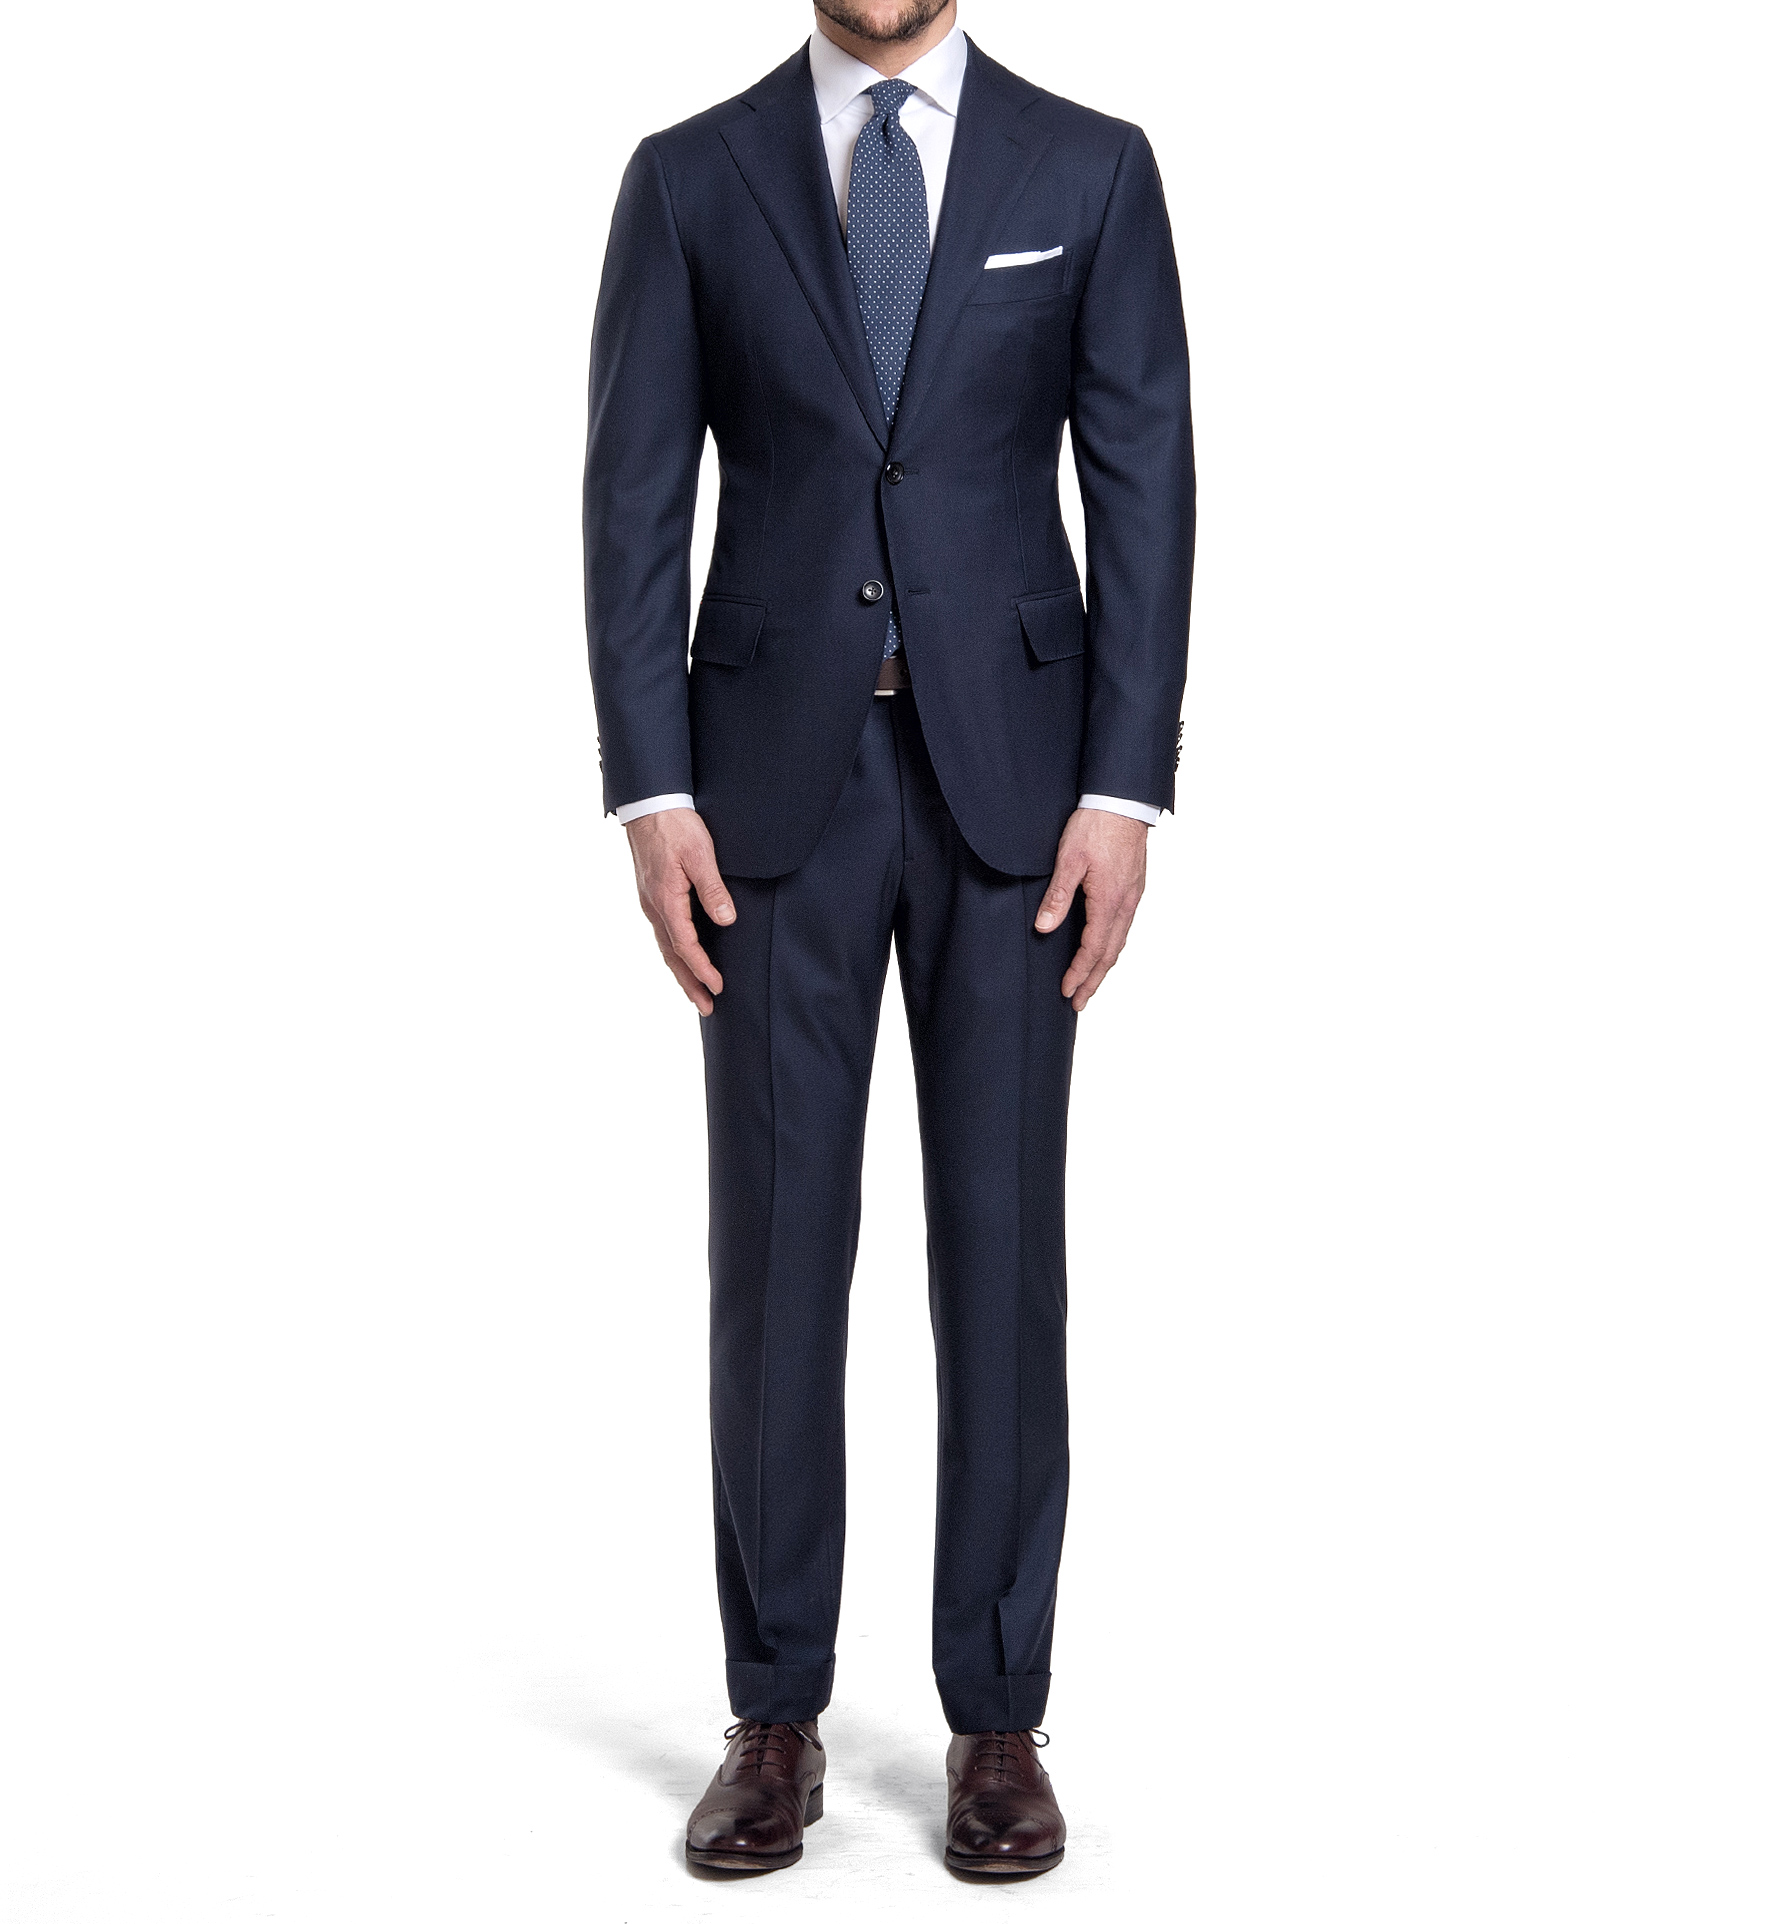 Zoom Image of Mercer Navy S150s Wool Suit with Cuffed Trouser